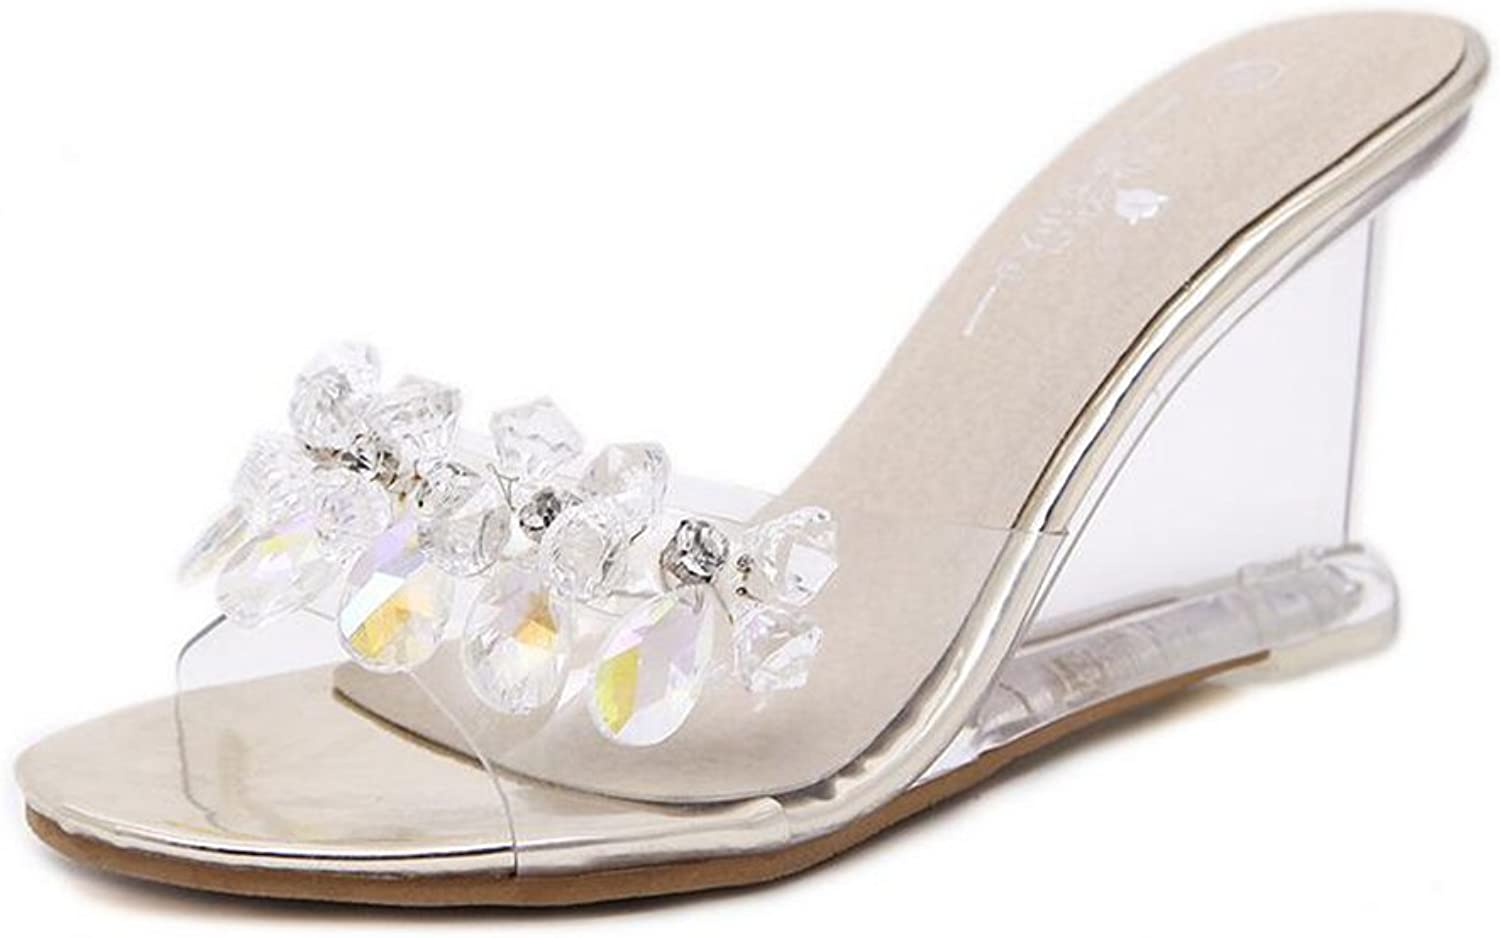 Women's shoes PVC Spring Summer Club shoes Heels Wedge Heel Crystal Heel Sparkling Glitter Rhinestone for Wedding Party & Evening